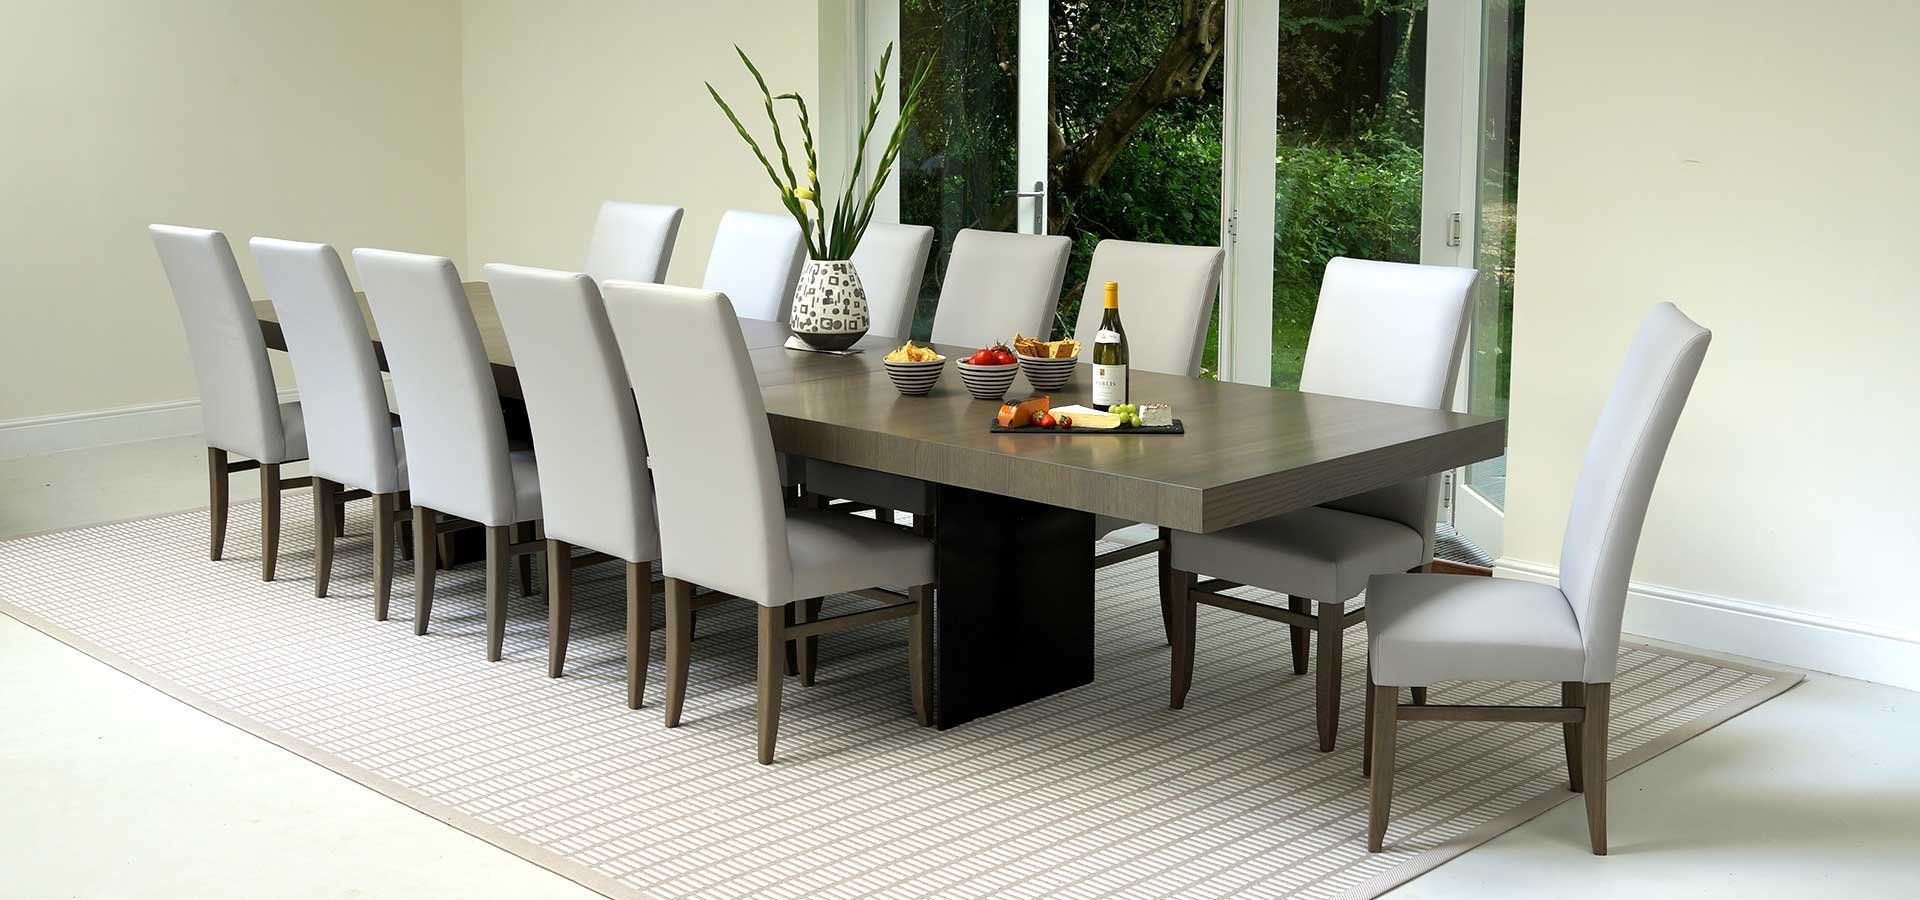 Guide 5 Tips That Will Help You Find The Best Dining Table